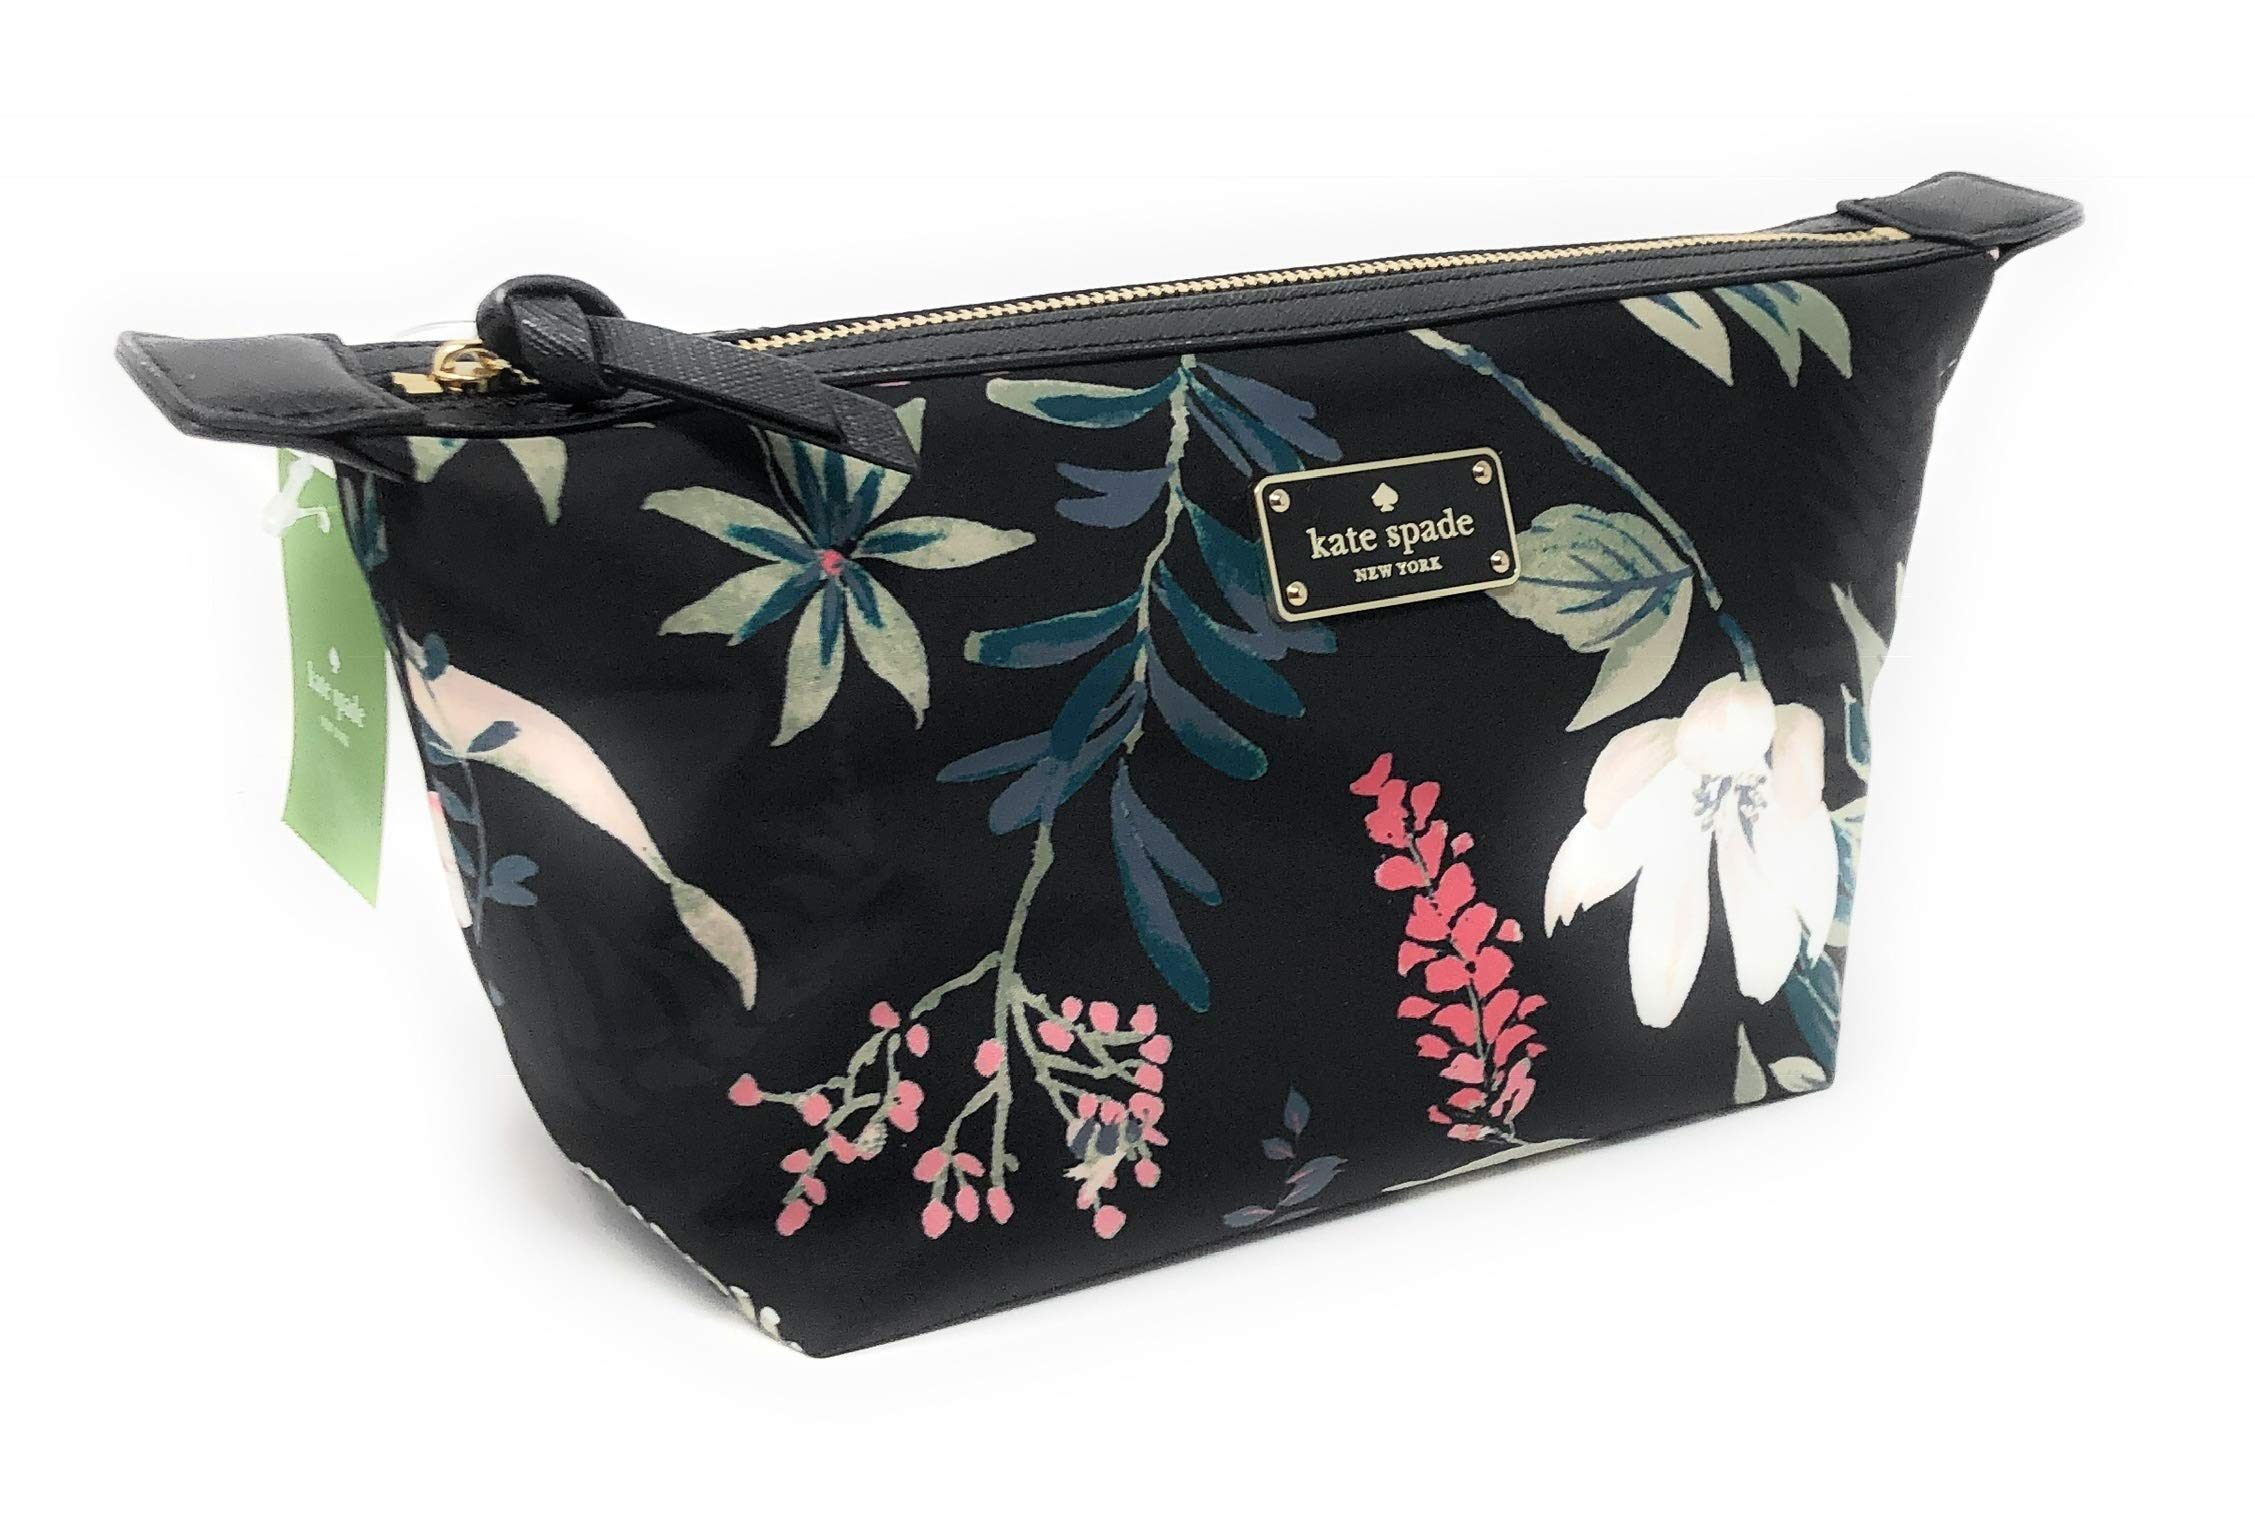 Kate Sapde Jodi Wilson Road Botanical Cosmetics Make-Up Clutch Bag Black Multi